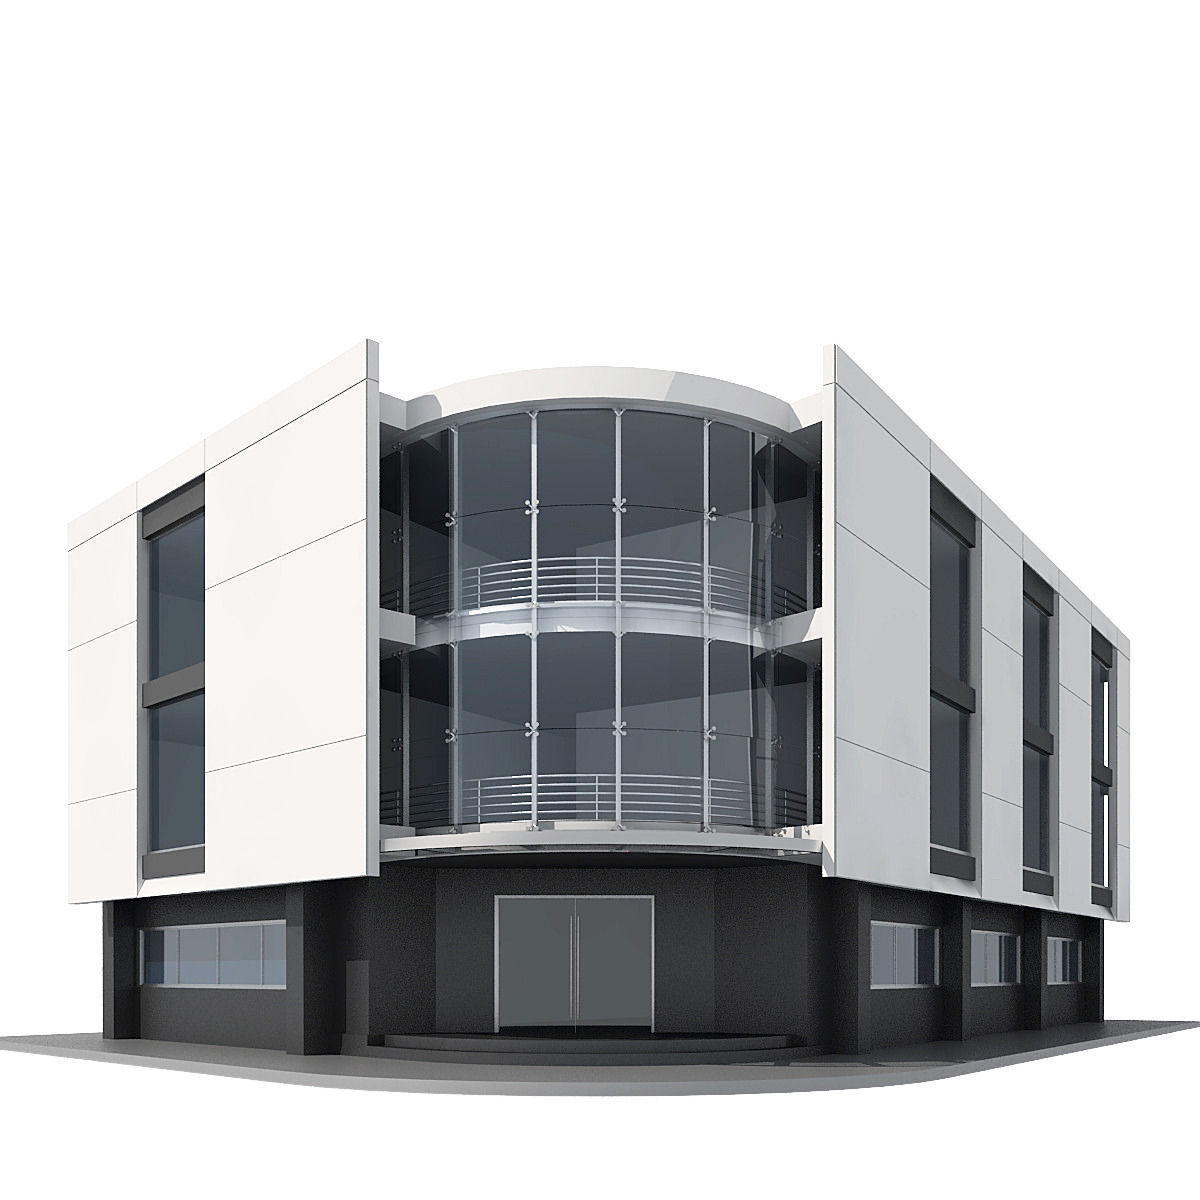 Corner building 3d model max obj 3ds 3d model house design